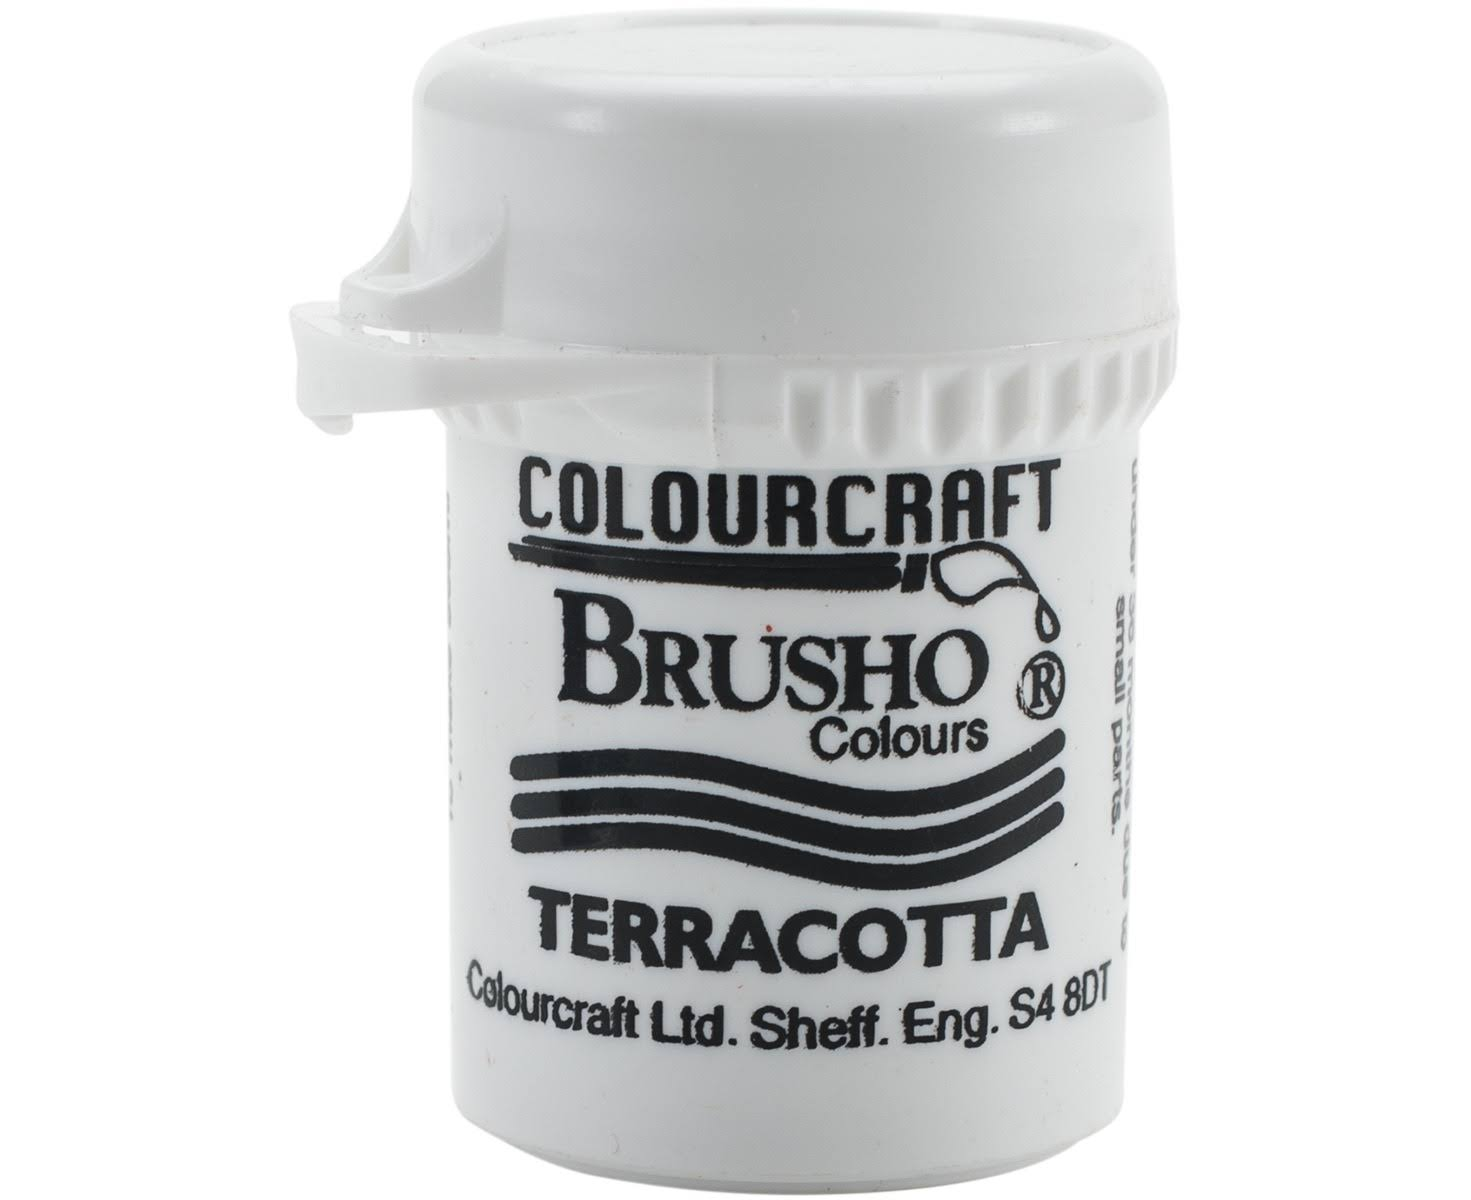 Colourcraft Brusho Crystal Colour - Terracotta, 15g